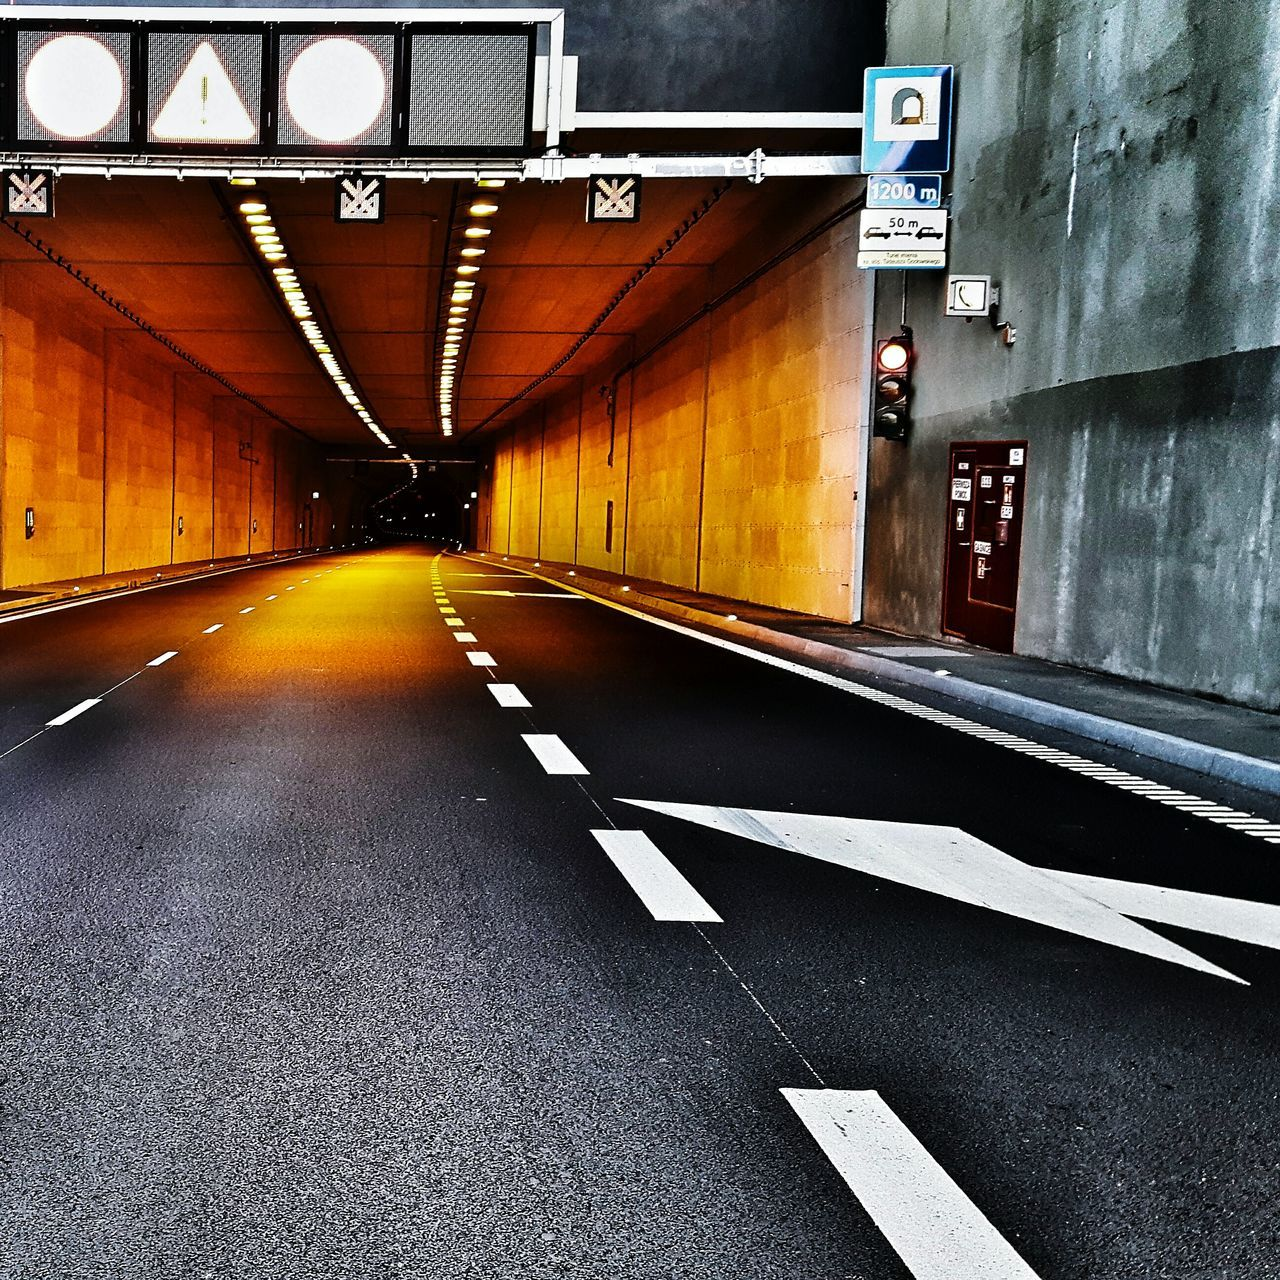 Tunnel entrance No People The Way Forward Architecture Tunnel Tunnel View Tunnel Entrance Car Tunnel Highway Tunnel Tunel Day Mode Of Transport Transportation EyeEmNewHere